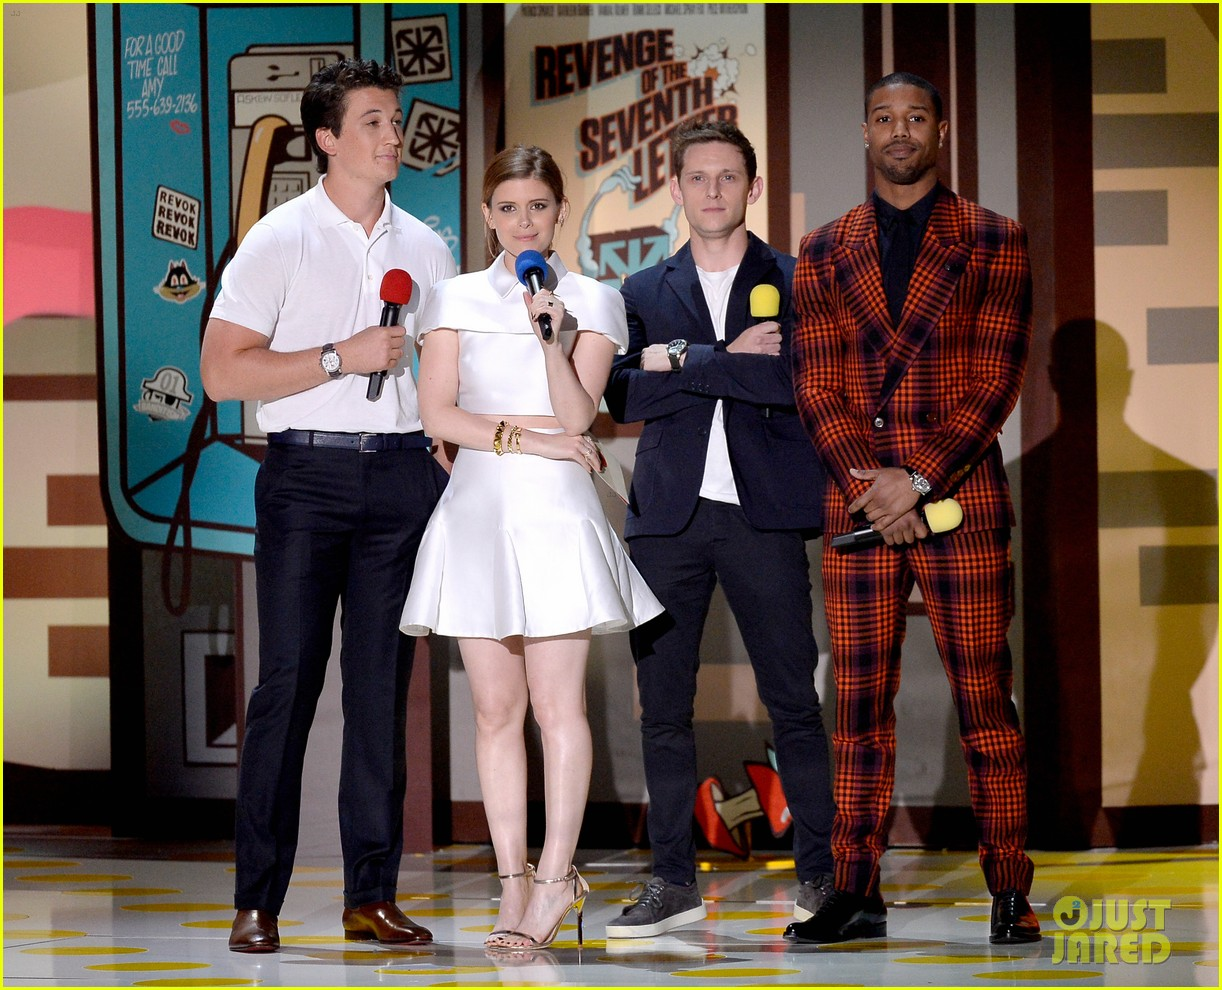 http://cdn02.cdn.justjared.com/wp-content/uploads/2015/04/fantastic-mtv/fantastic-four-mtv-movie-awards-2015-03.jpg